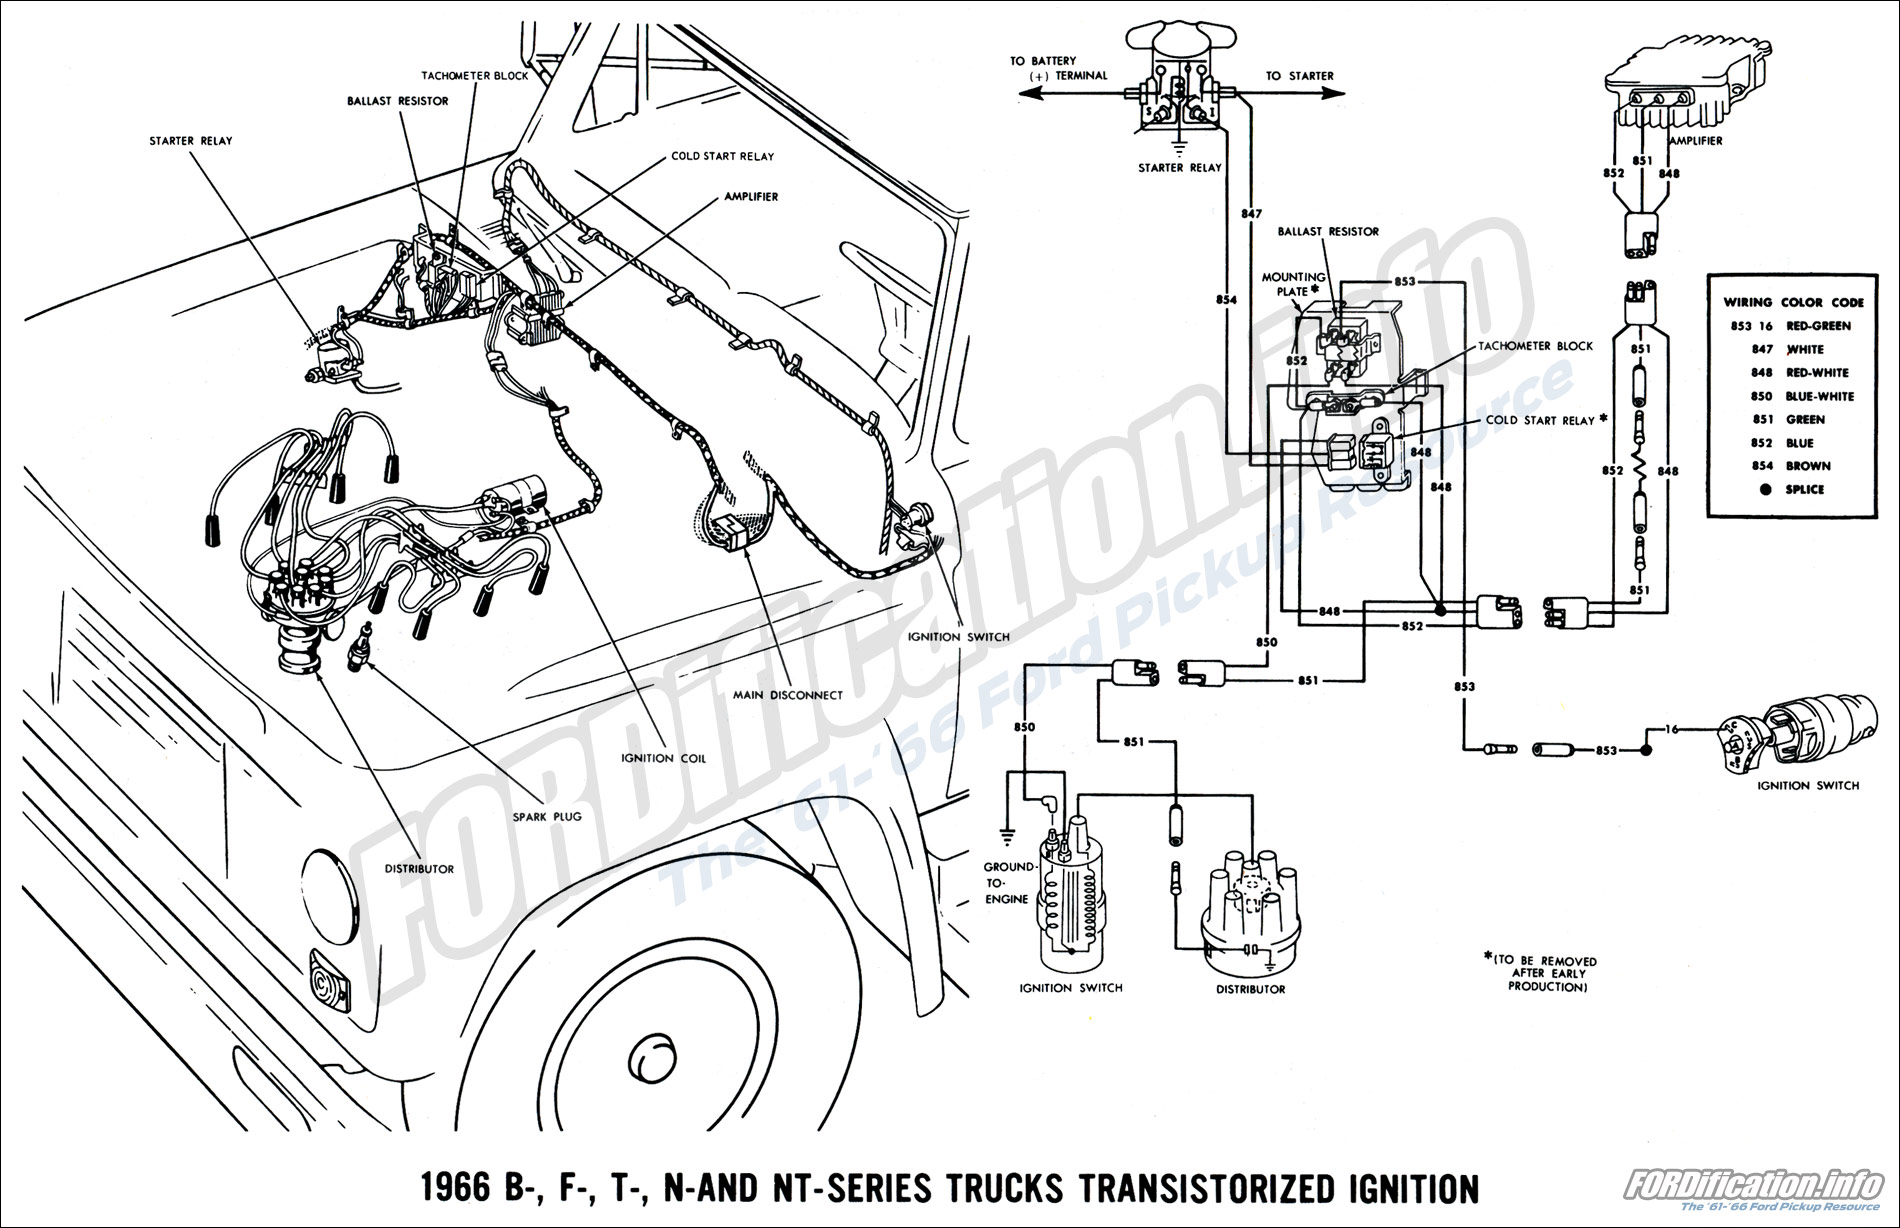 1966 Ford Truck Wiring Diagram : 30 Wiring Diagram Images